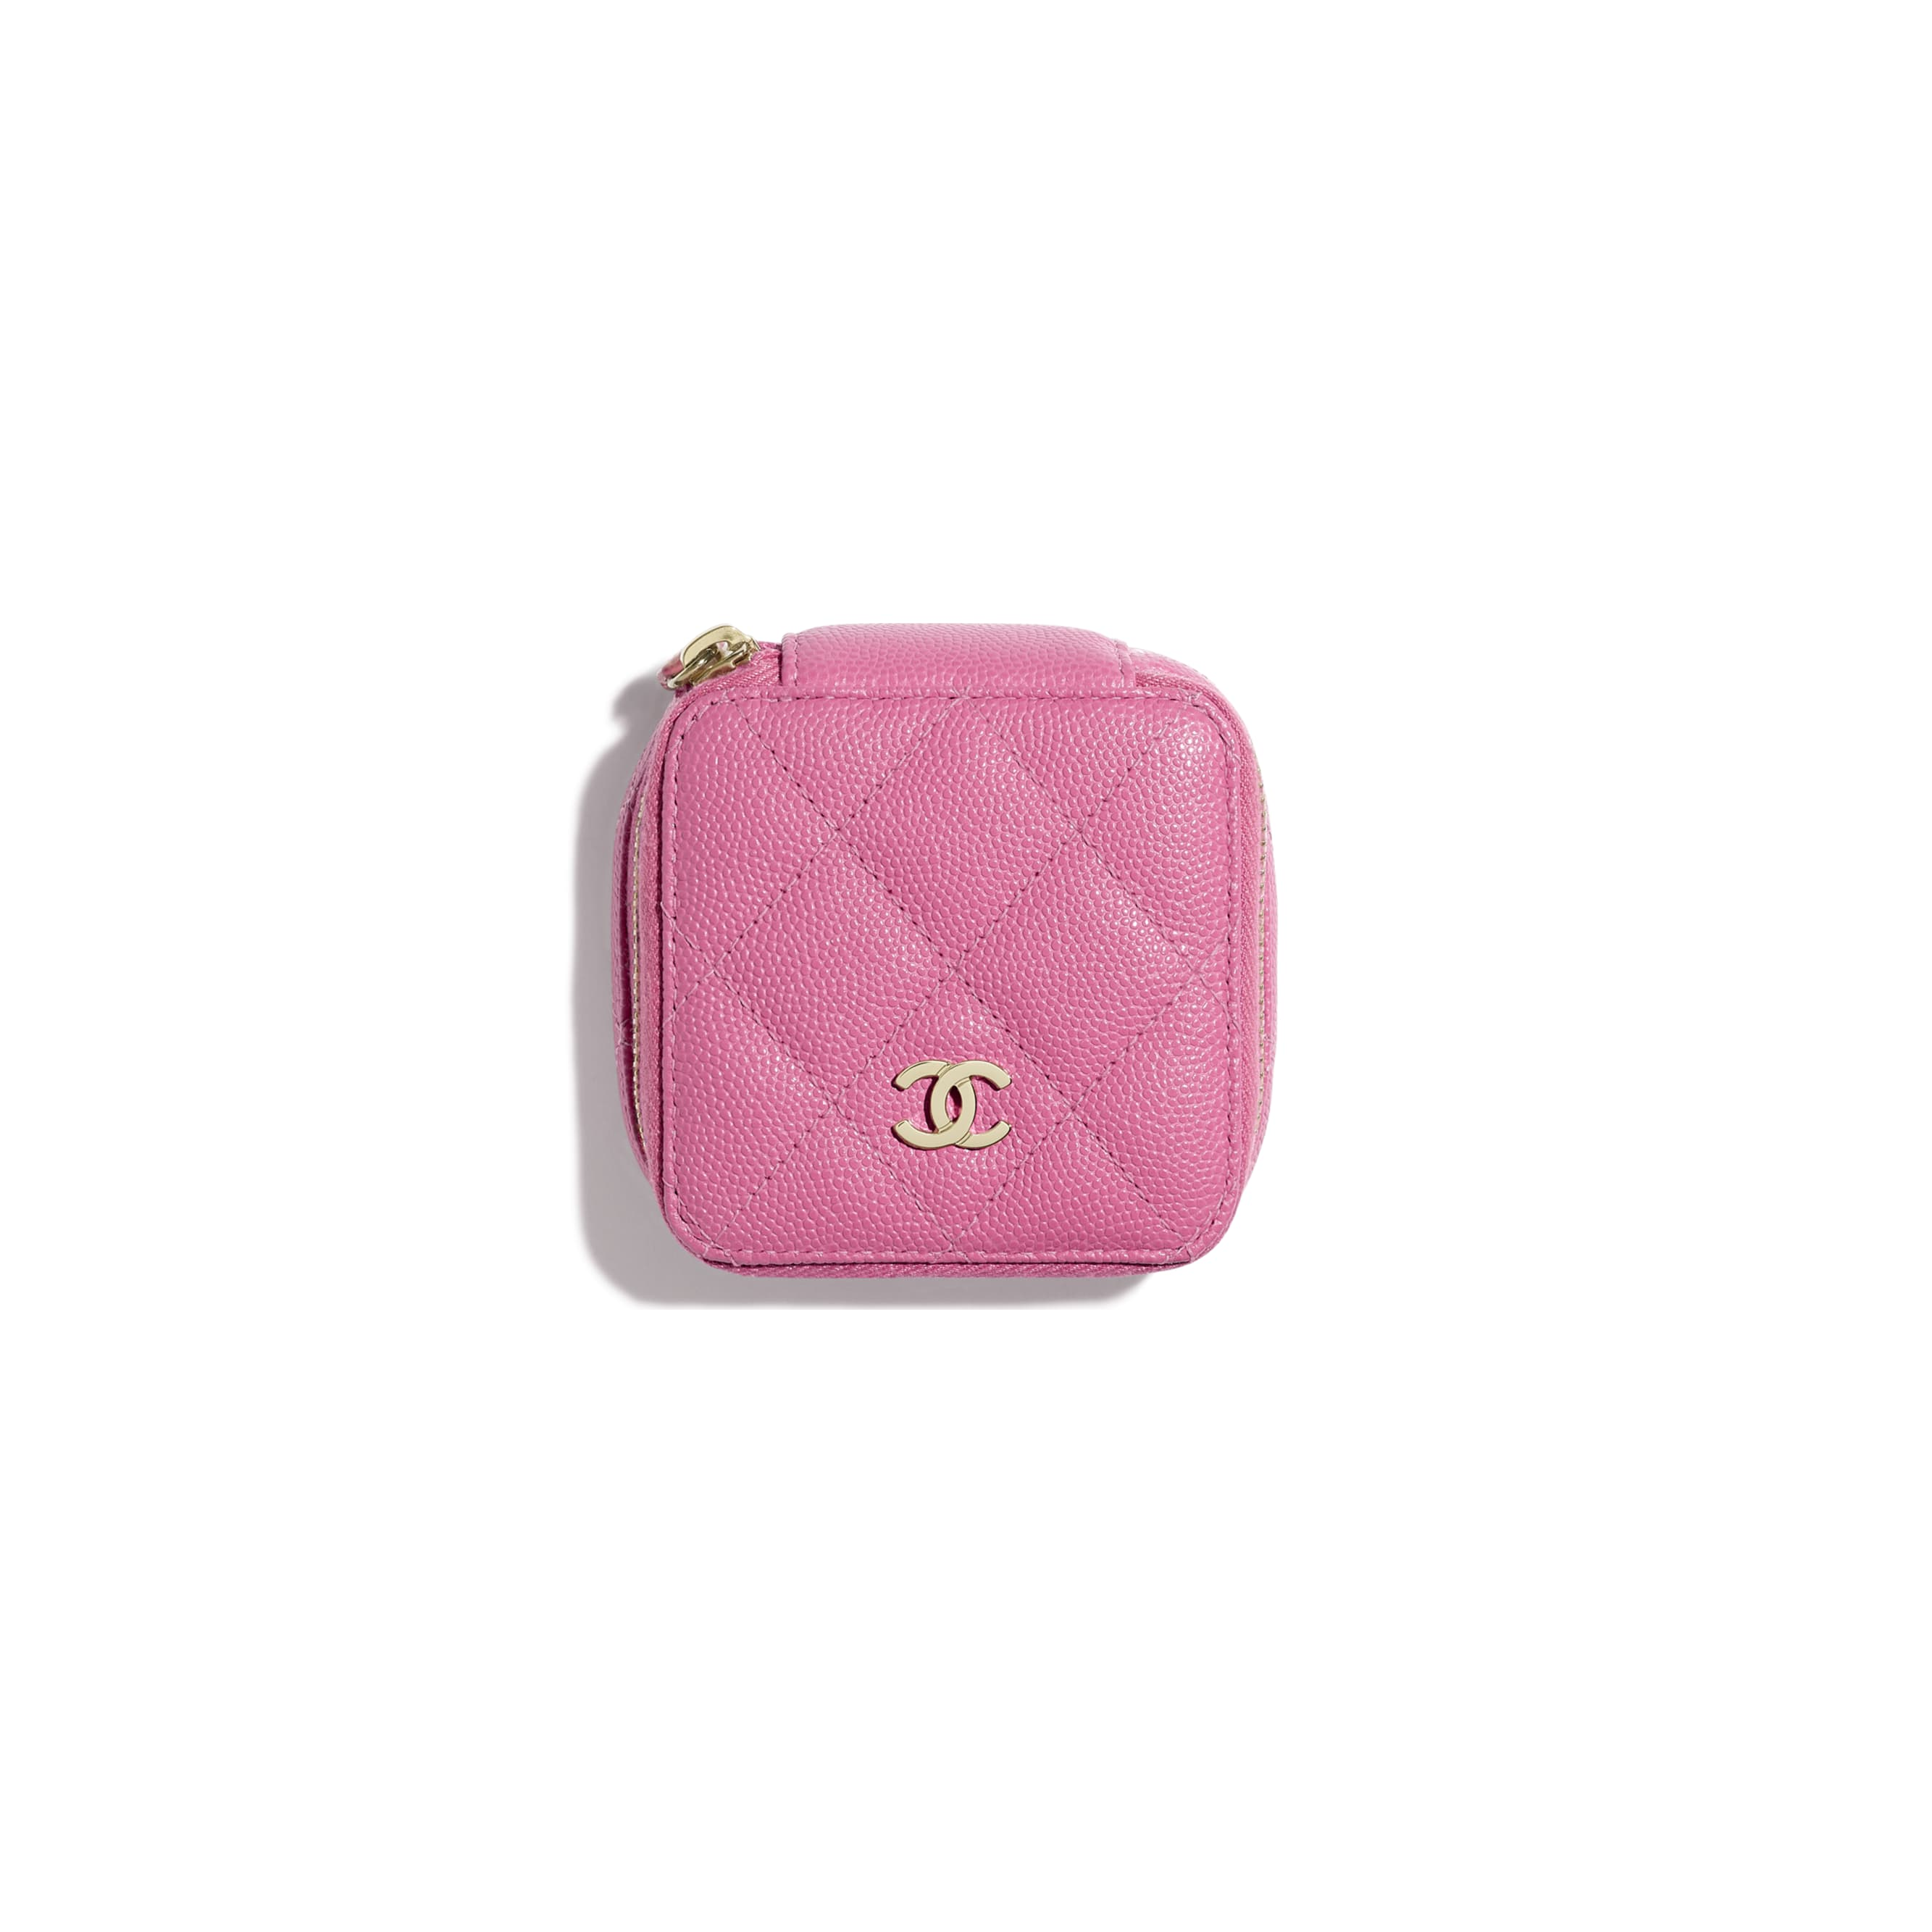 Classic Small Jewellery Pouch - Pink - Grained Calfskin & Gold-Tone Metal - Alternative view - see standard sized version